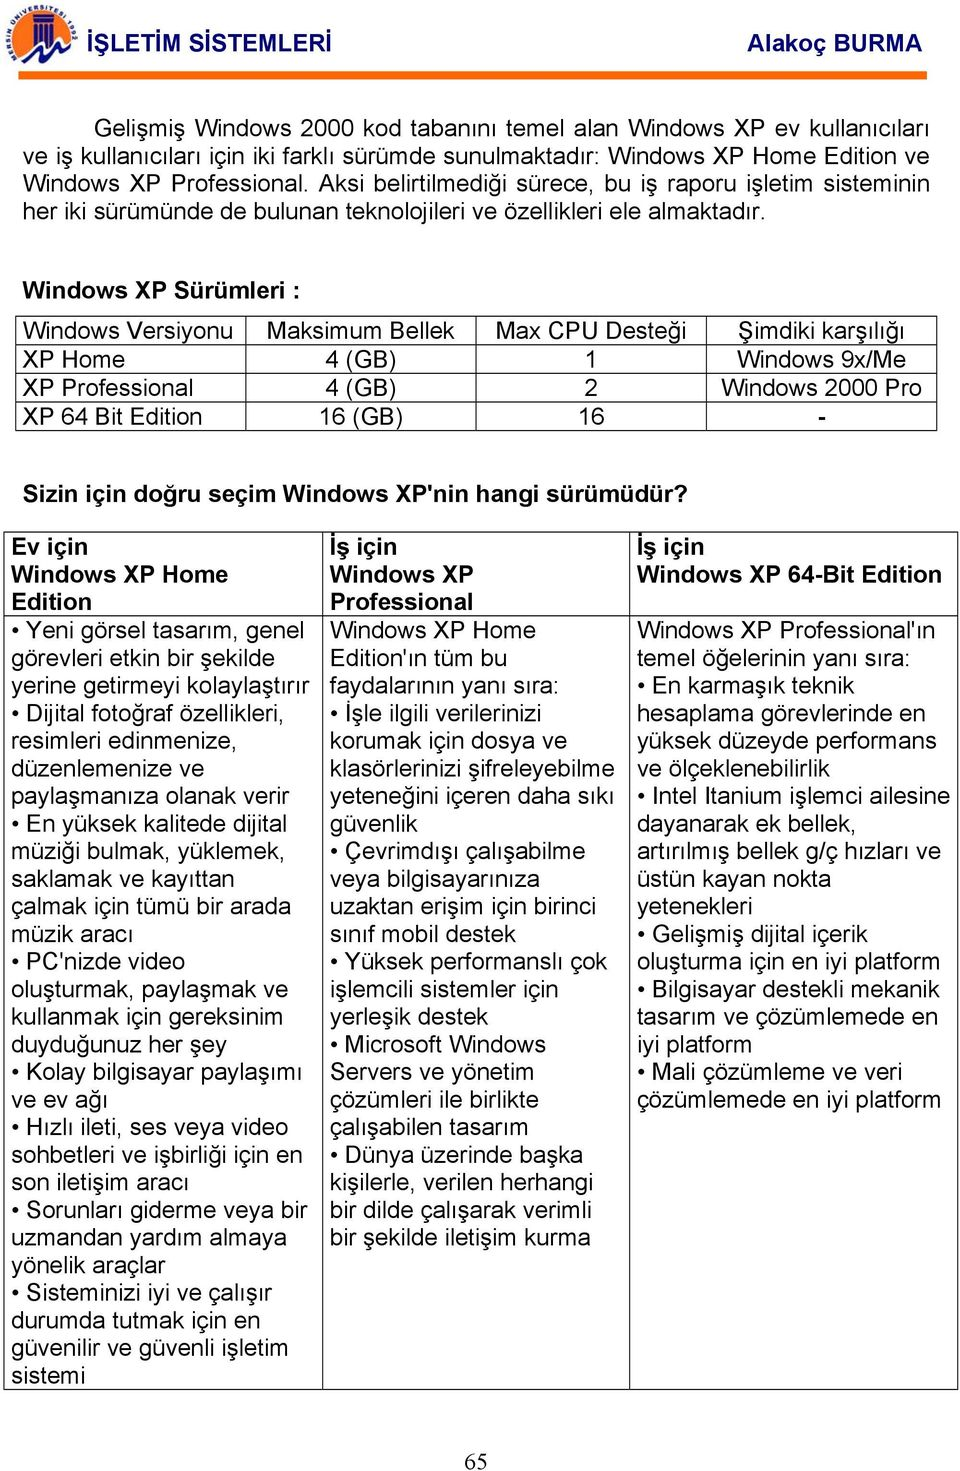 Windows XP Sürümleri : Windows Versiyonu Maksimum Bellek Max CPU Desteği Şimdiki karşılığı XP Home 4 (GB) 1 Windows 9x/Me XP Professional 4 (GB) 2 Windows 2000 Pro XP 64 Bit Edition 16 (GB) 16 -